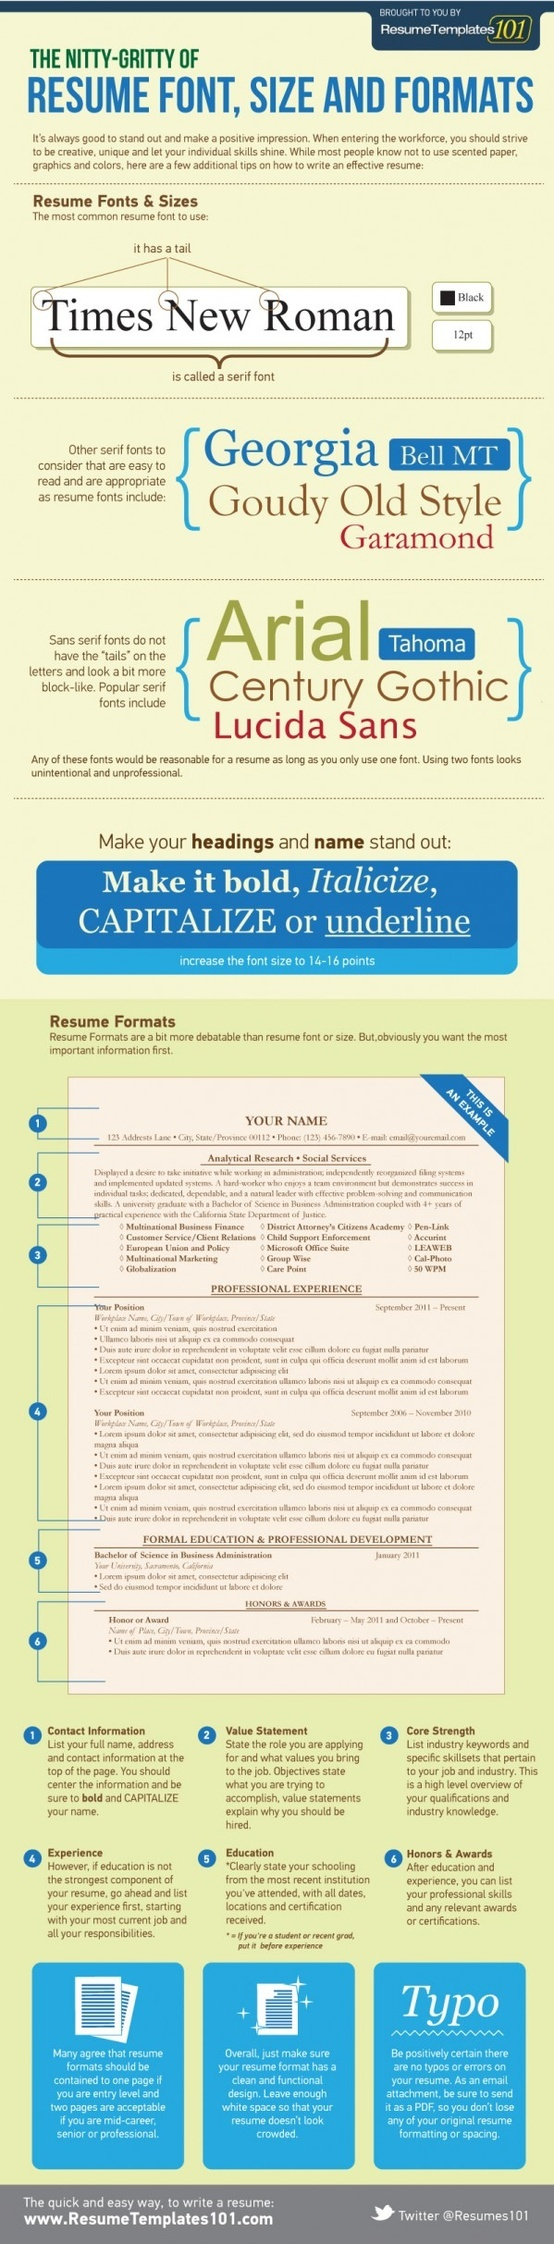 Resume For First Job No Experience Adorable 27 Best Education Images On Pinterest  Gym Personal Development .